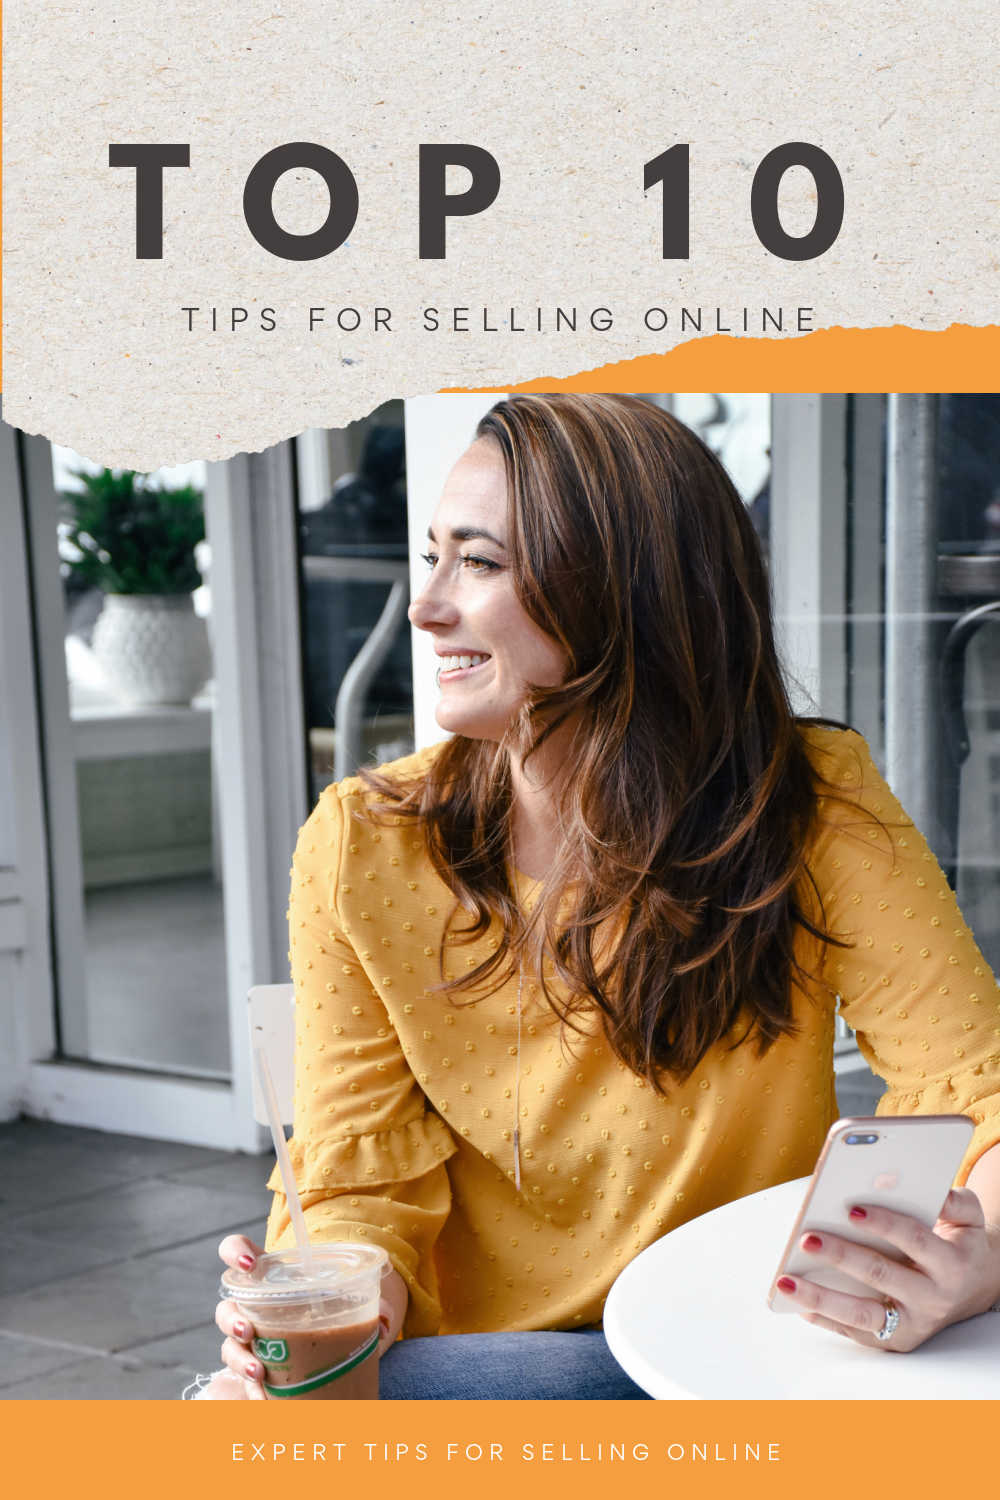 EXPERT TIPS FOR SELLING ONLINE